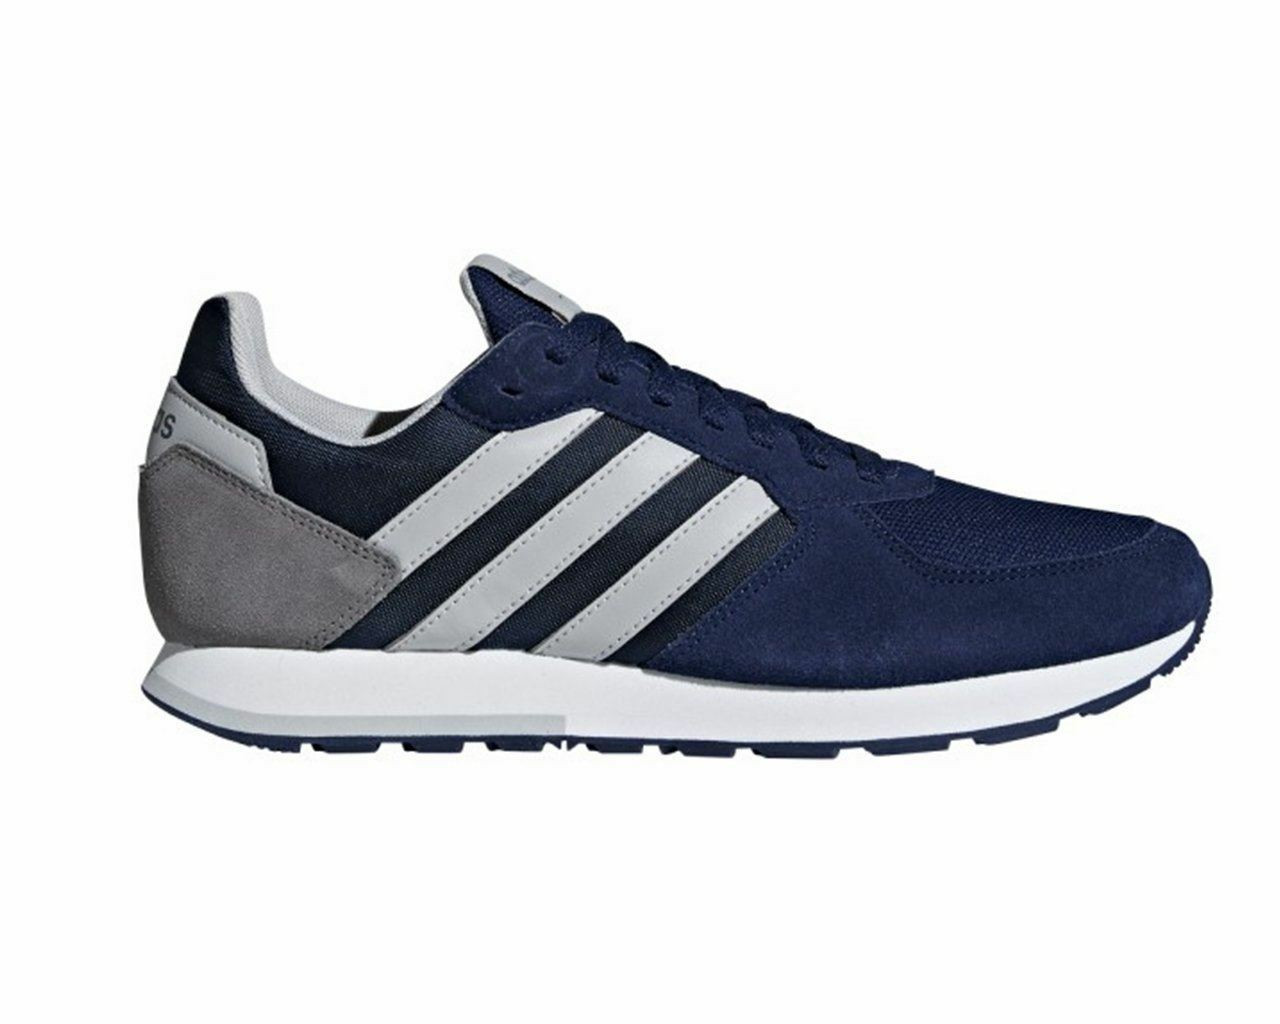 Adidas 8K B44669 Trainers Dark bluee